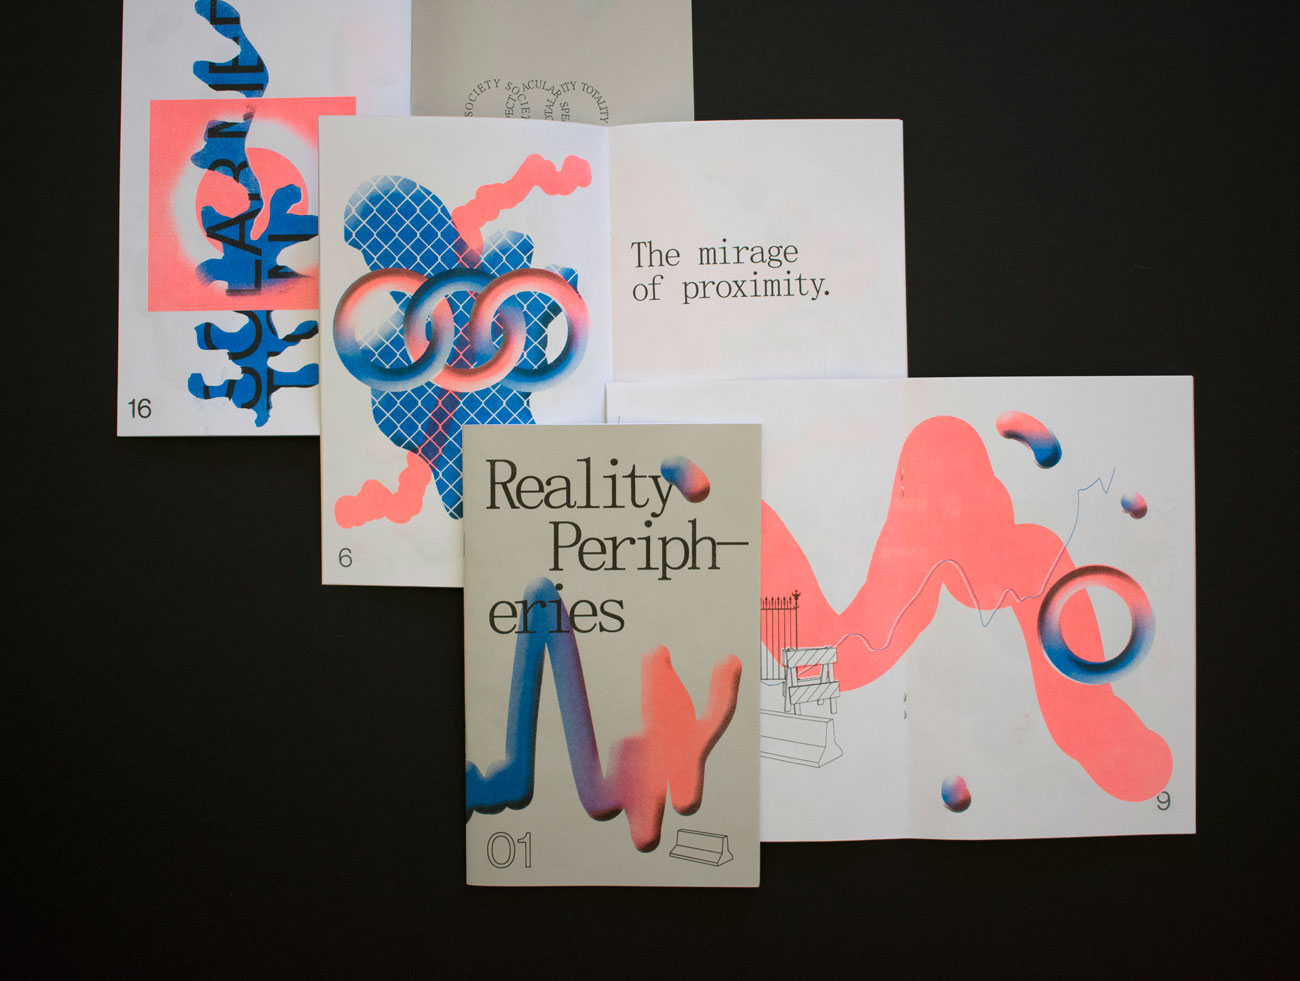 Reality Peripheries by Drew Sisk